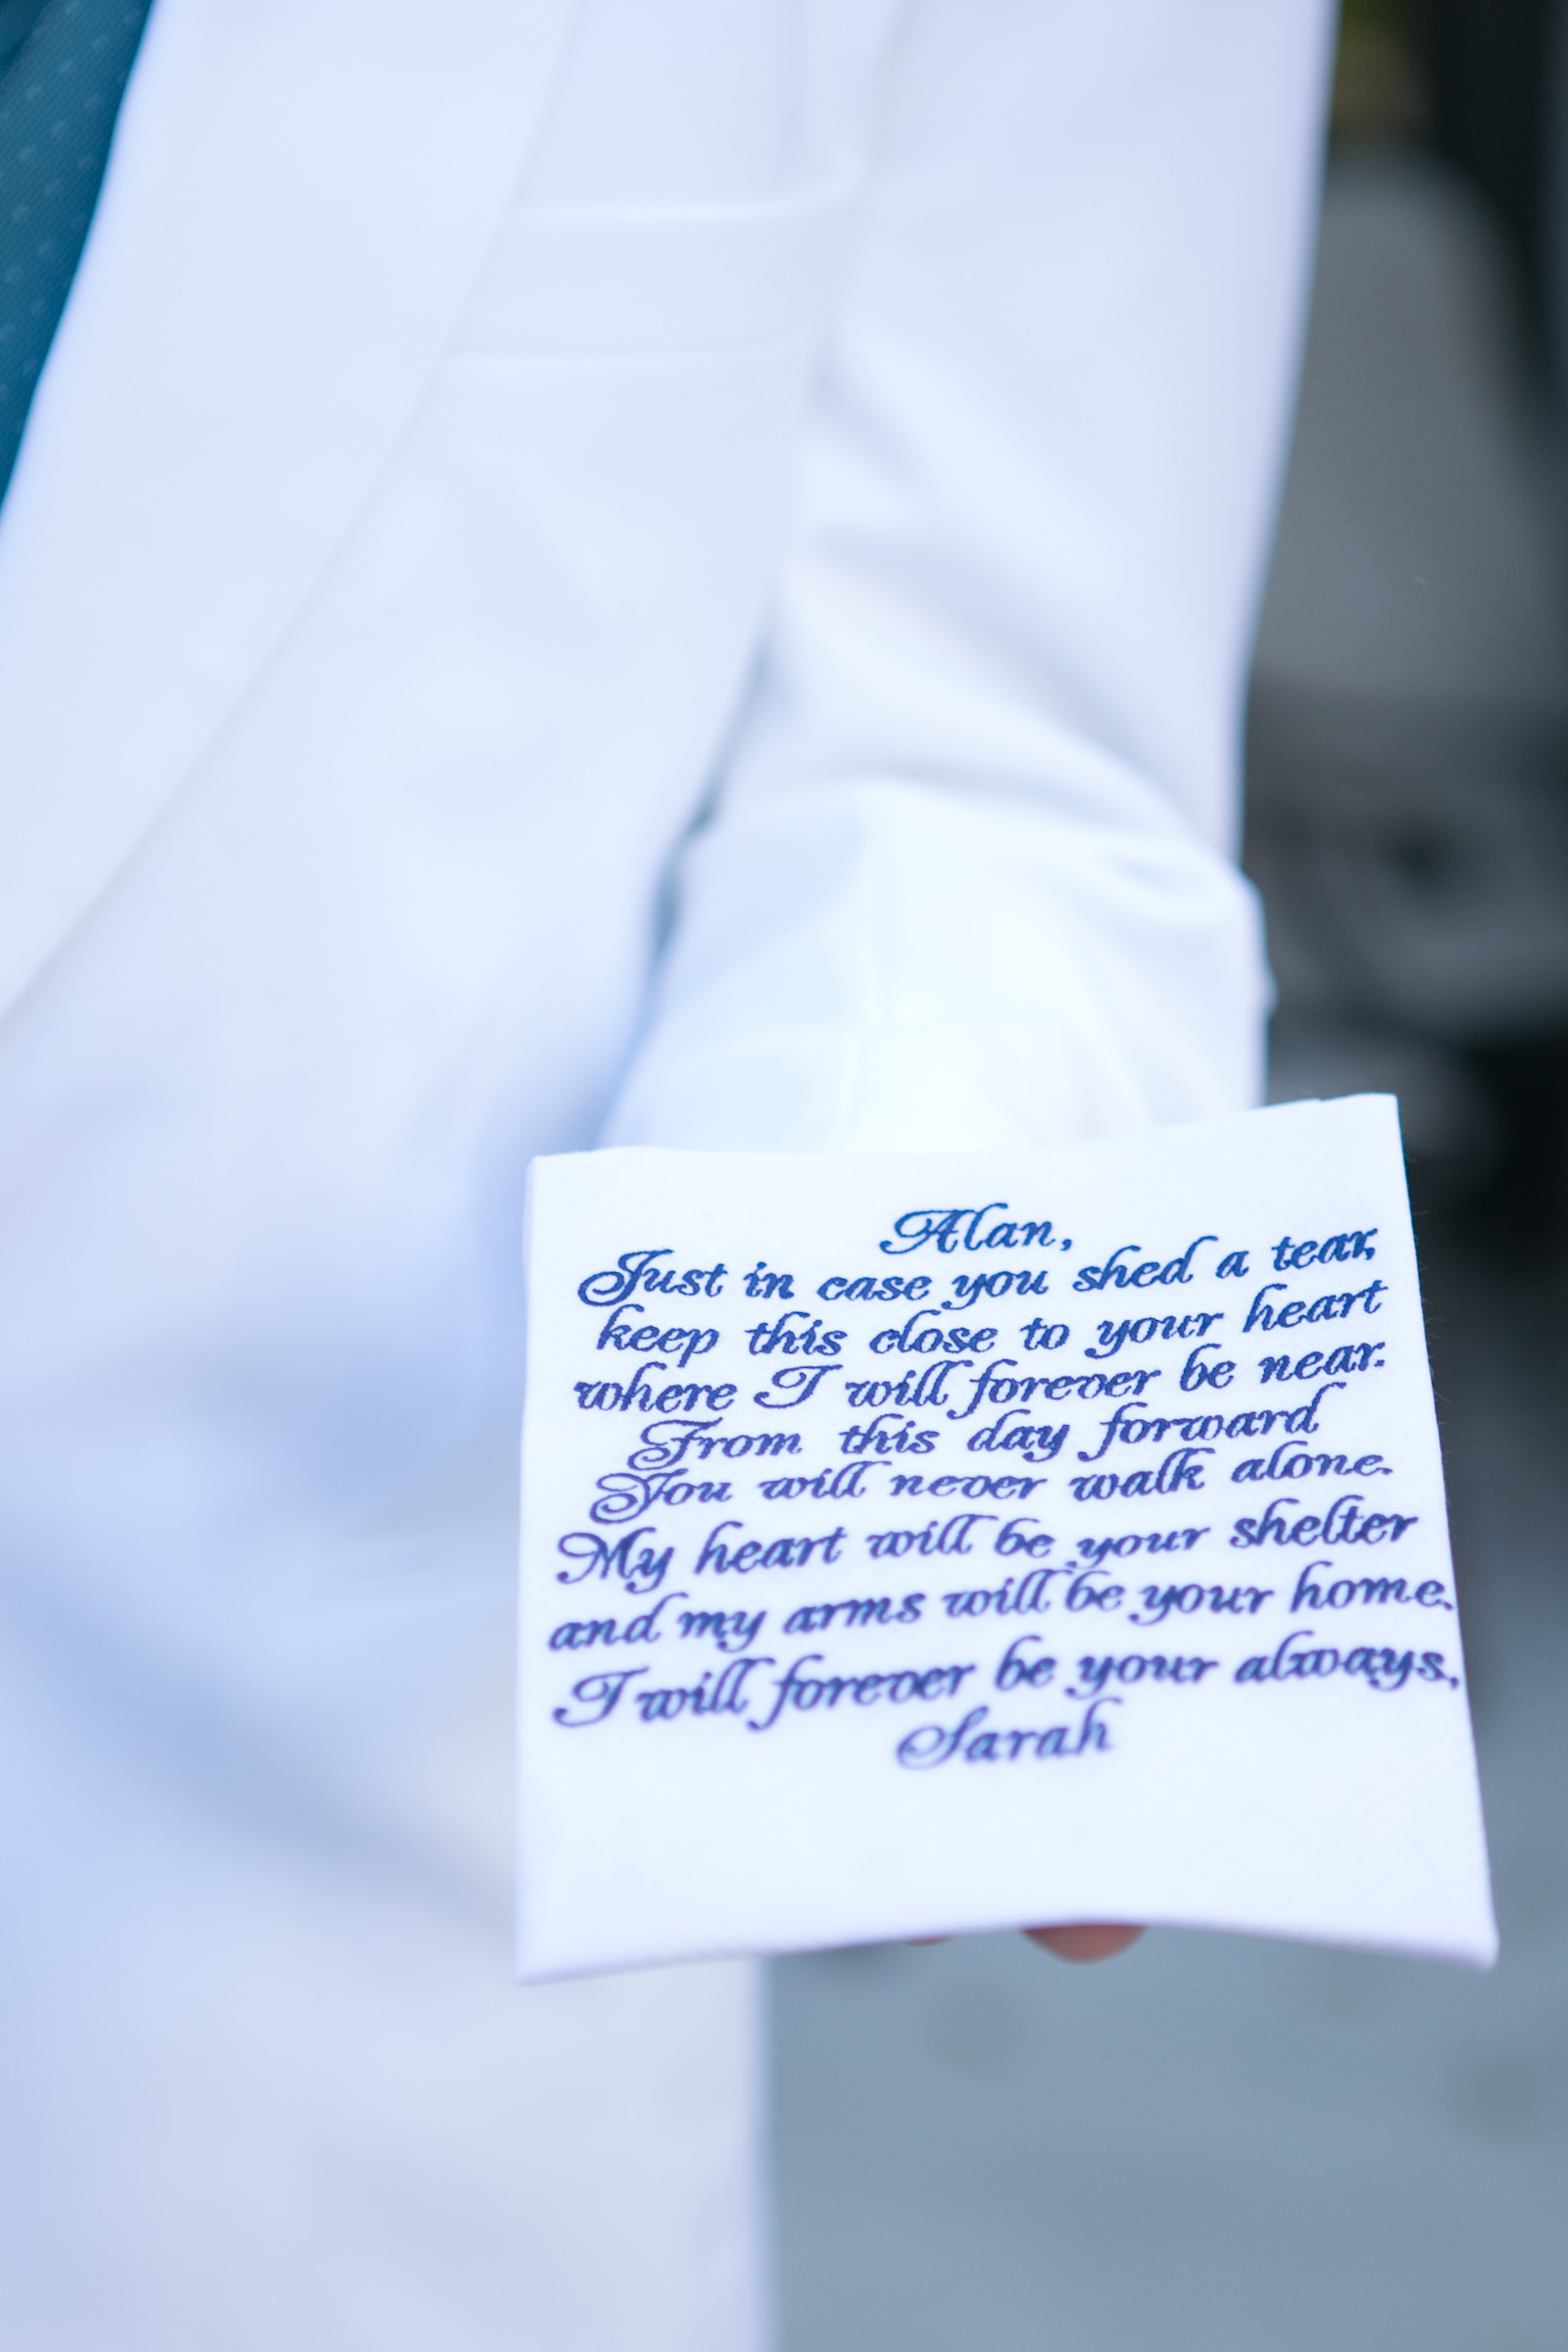 Personalized Wedding Handkerchief from Bride to Groom | Wedding Photographer Carrie Wildes Photography